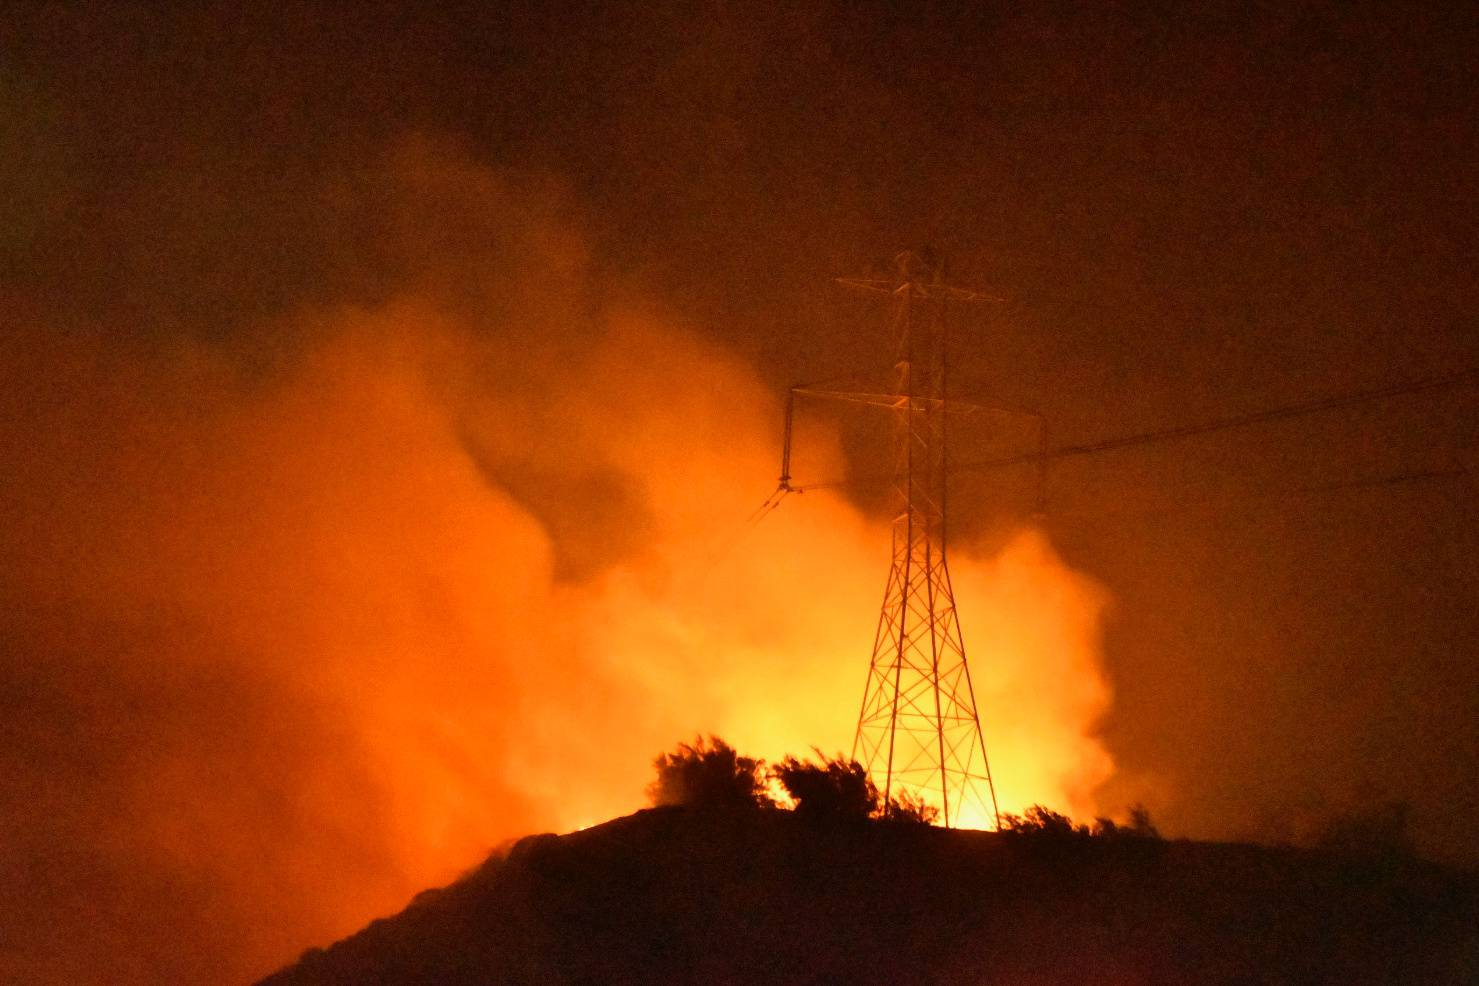 A wind-driven wildfire burns near power lines in Sylmar, California